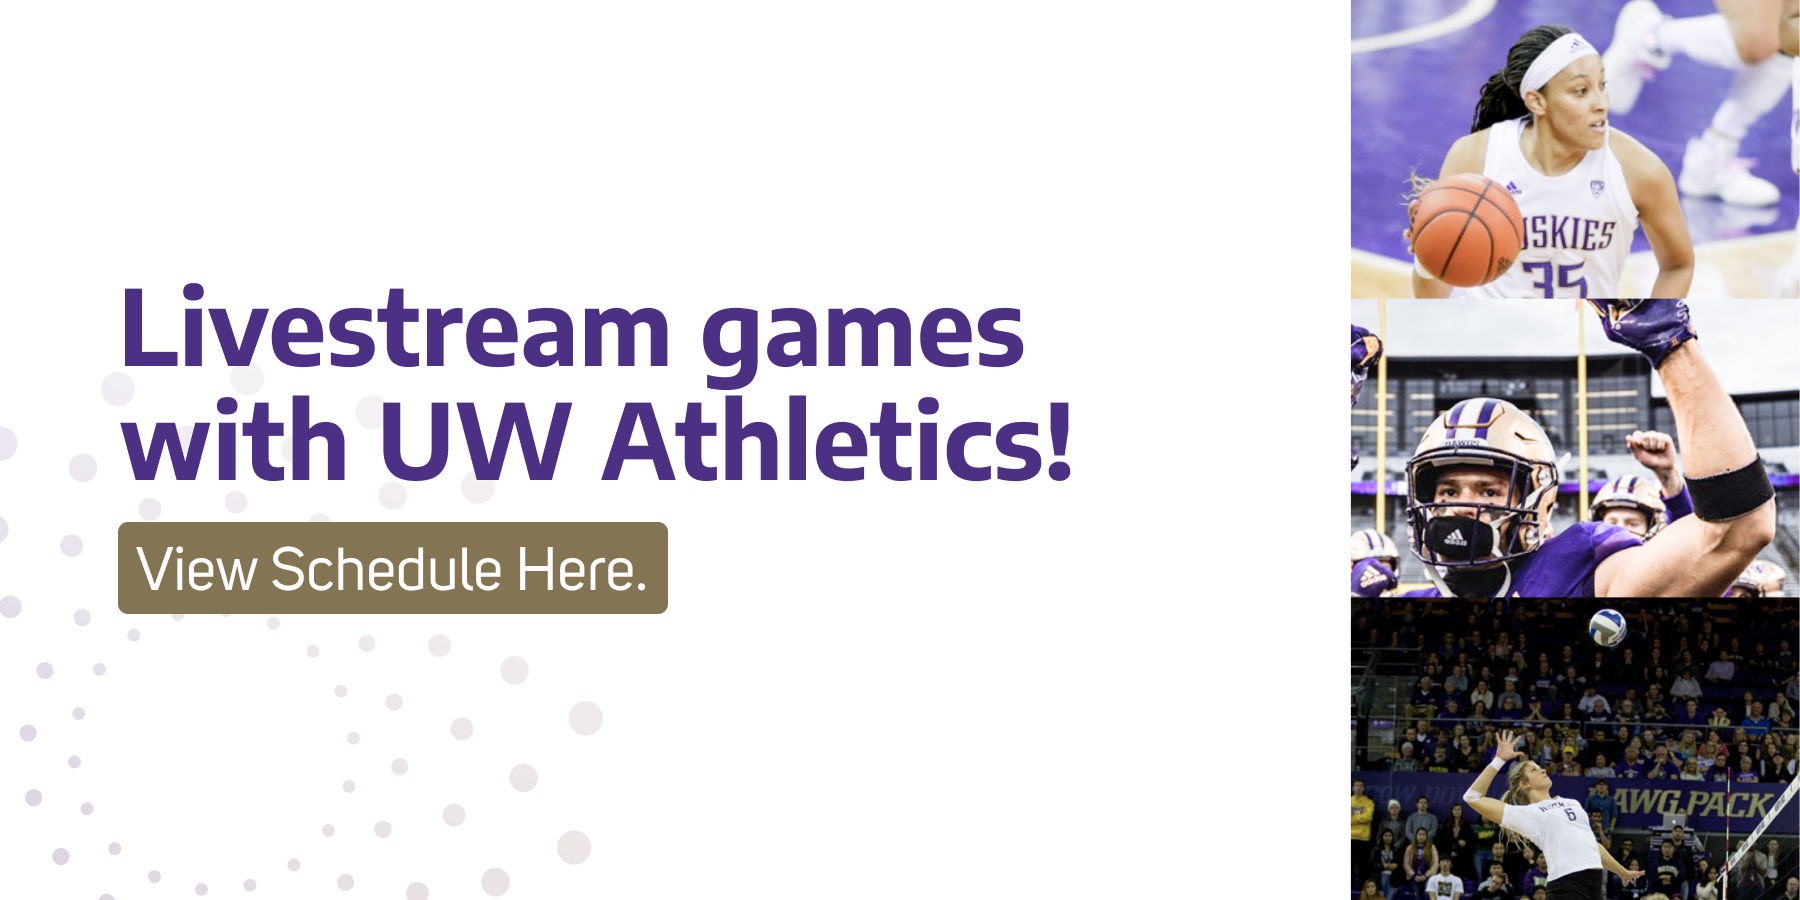 Join the Dawg Pack from home by tuning into Husky games live streamed from Pac-12! Check out this week's schedule!